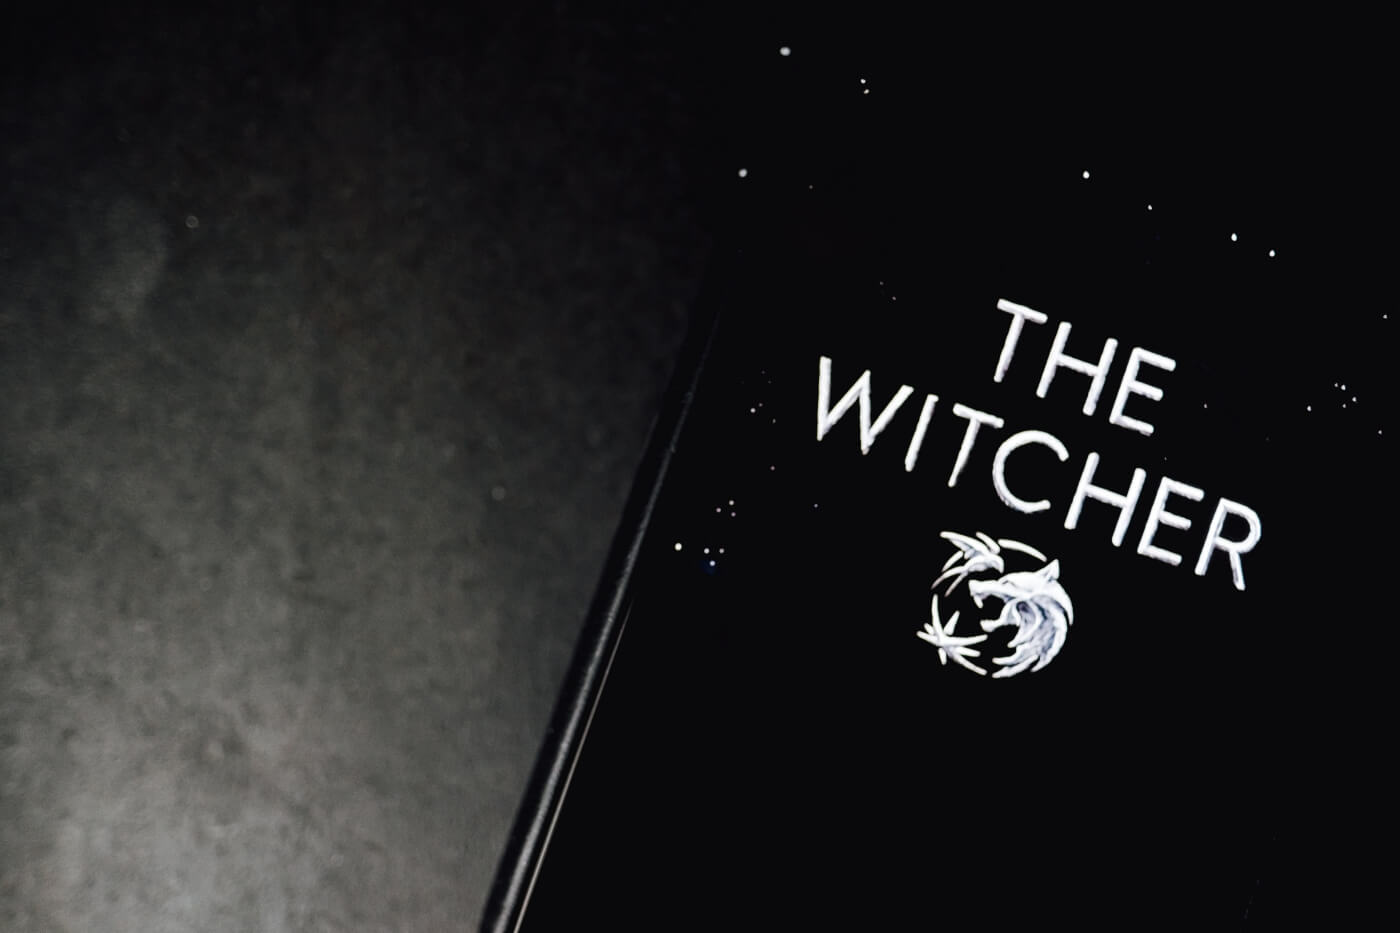 Netflix confirms rumors of a Witcher anime written by series co-producer Beau DeMayo